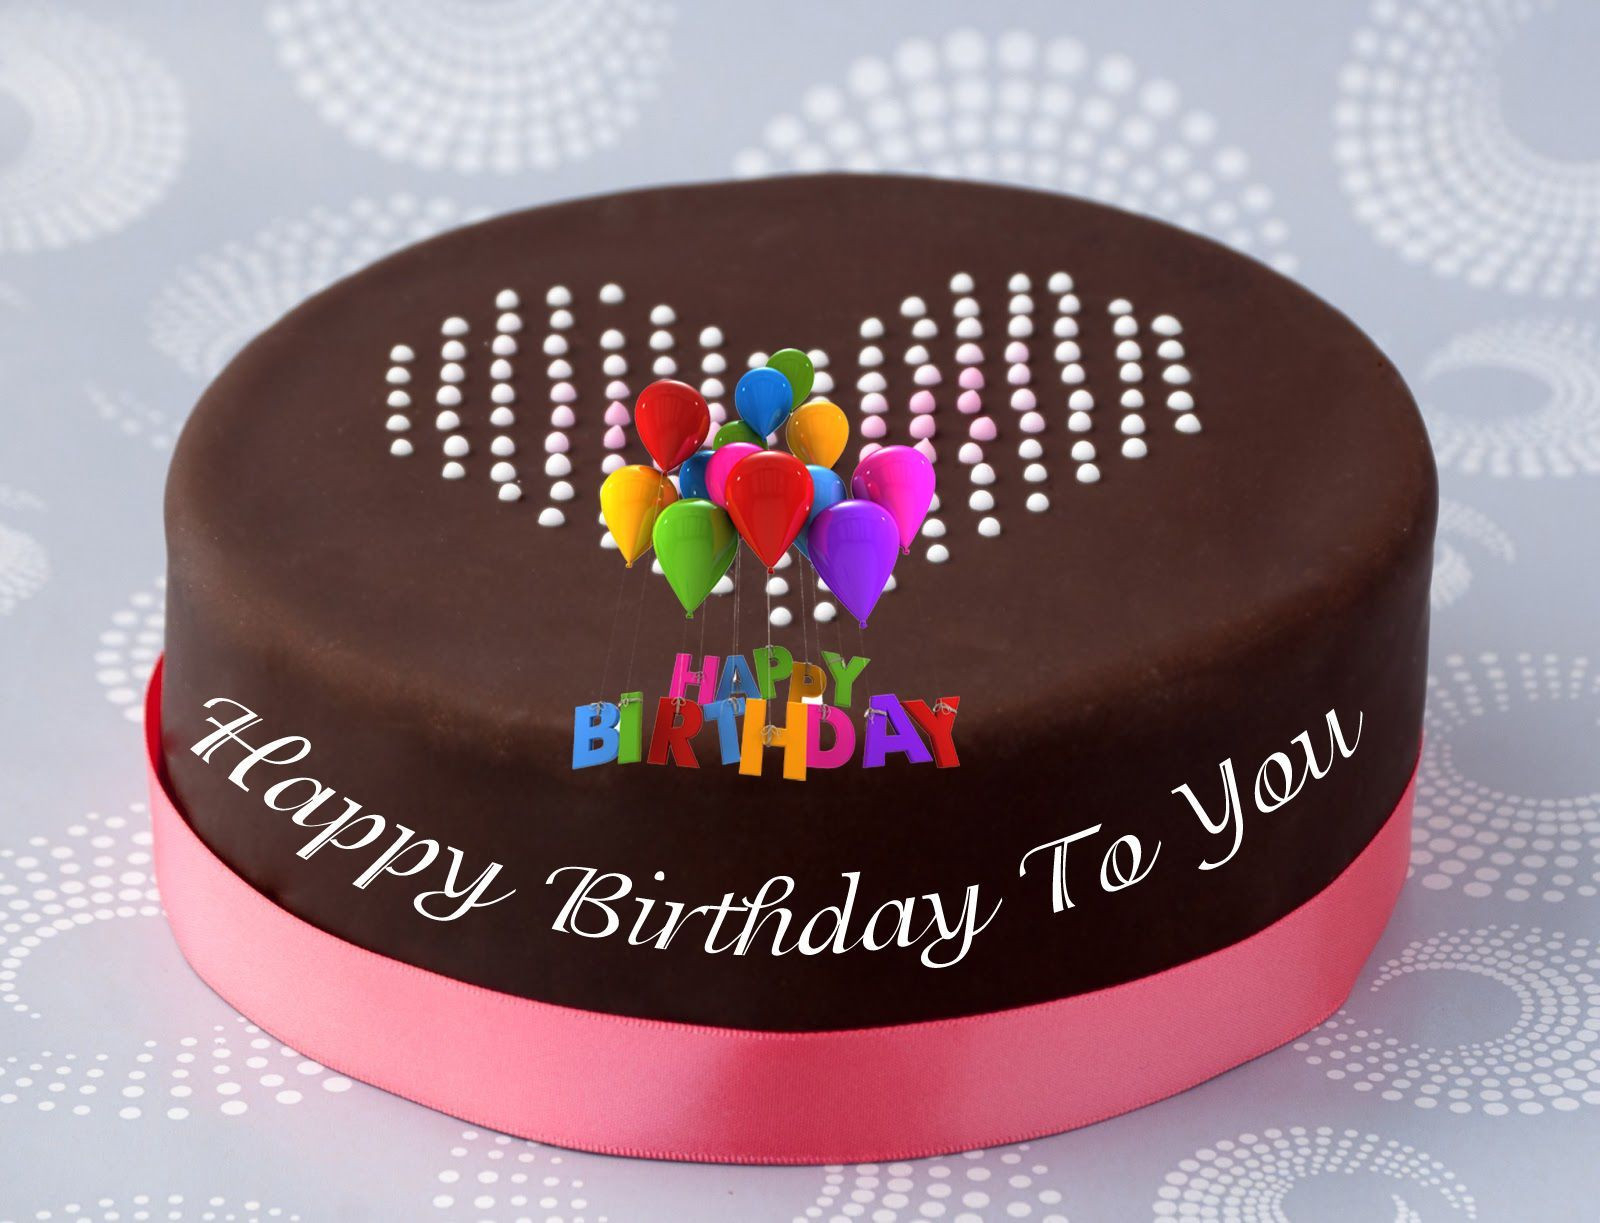 Happy birthday cake pictures free download